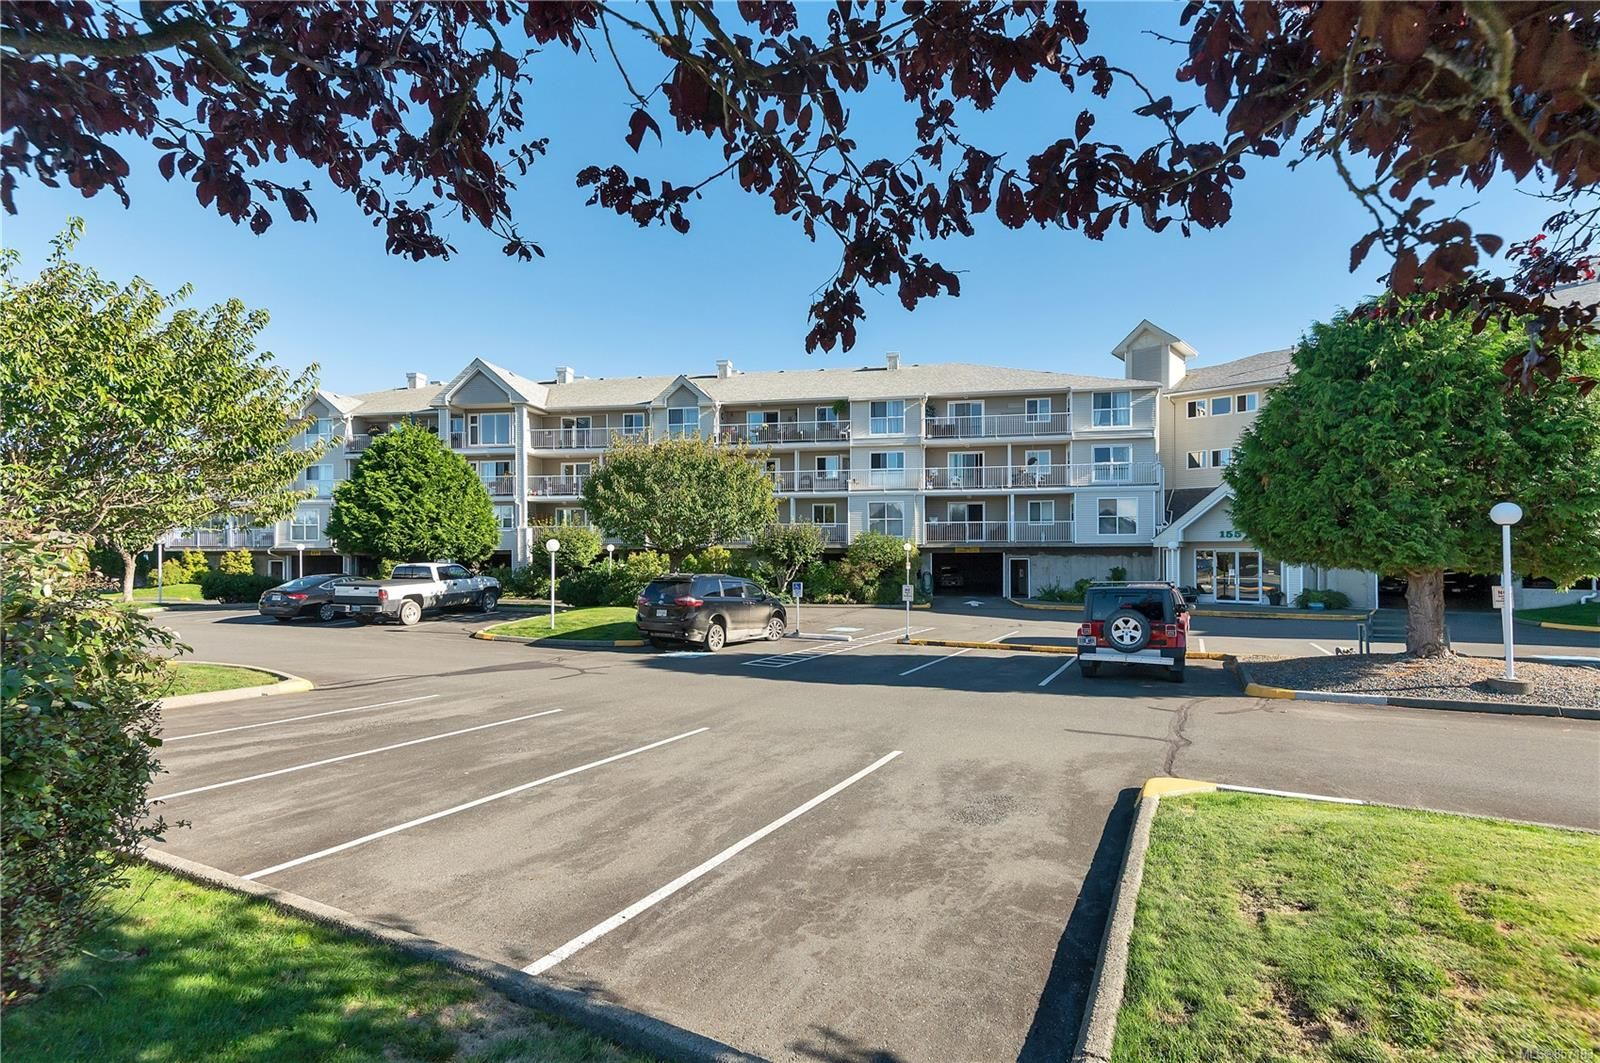 Main Photo: 316 155 Erickson Rd in : CR Campbell River South Condo for sale (Campbell River)  : MLS®# 857183